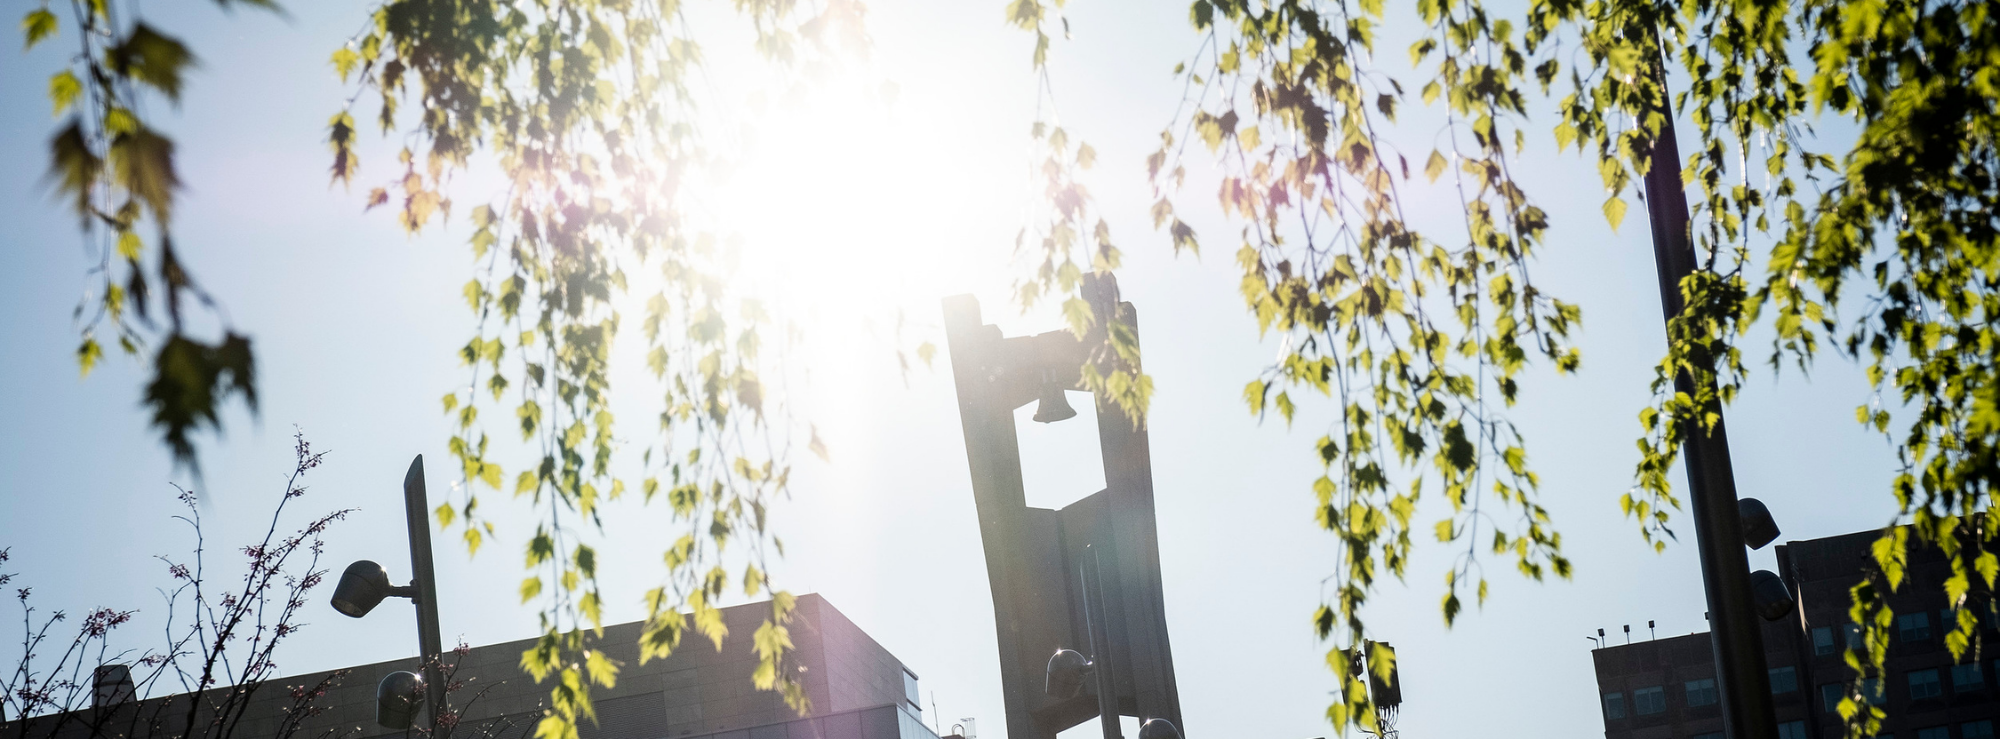 Photo of Temple University bell tower with sunshine and trees.